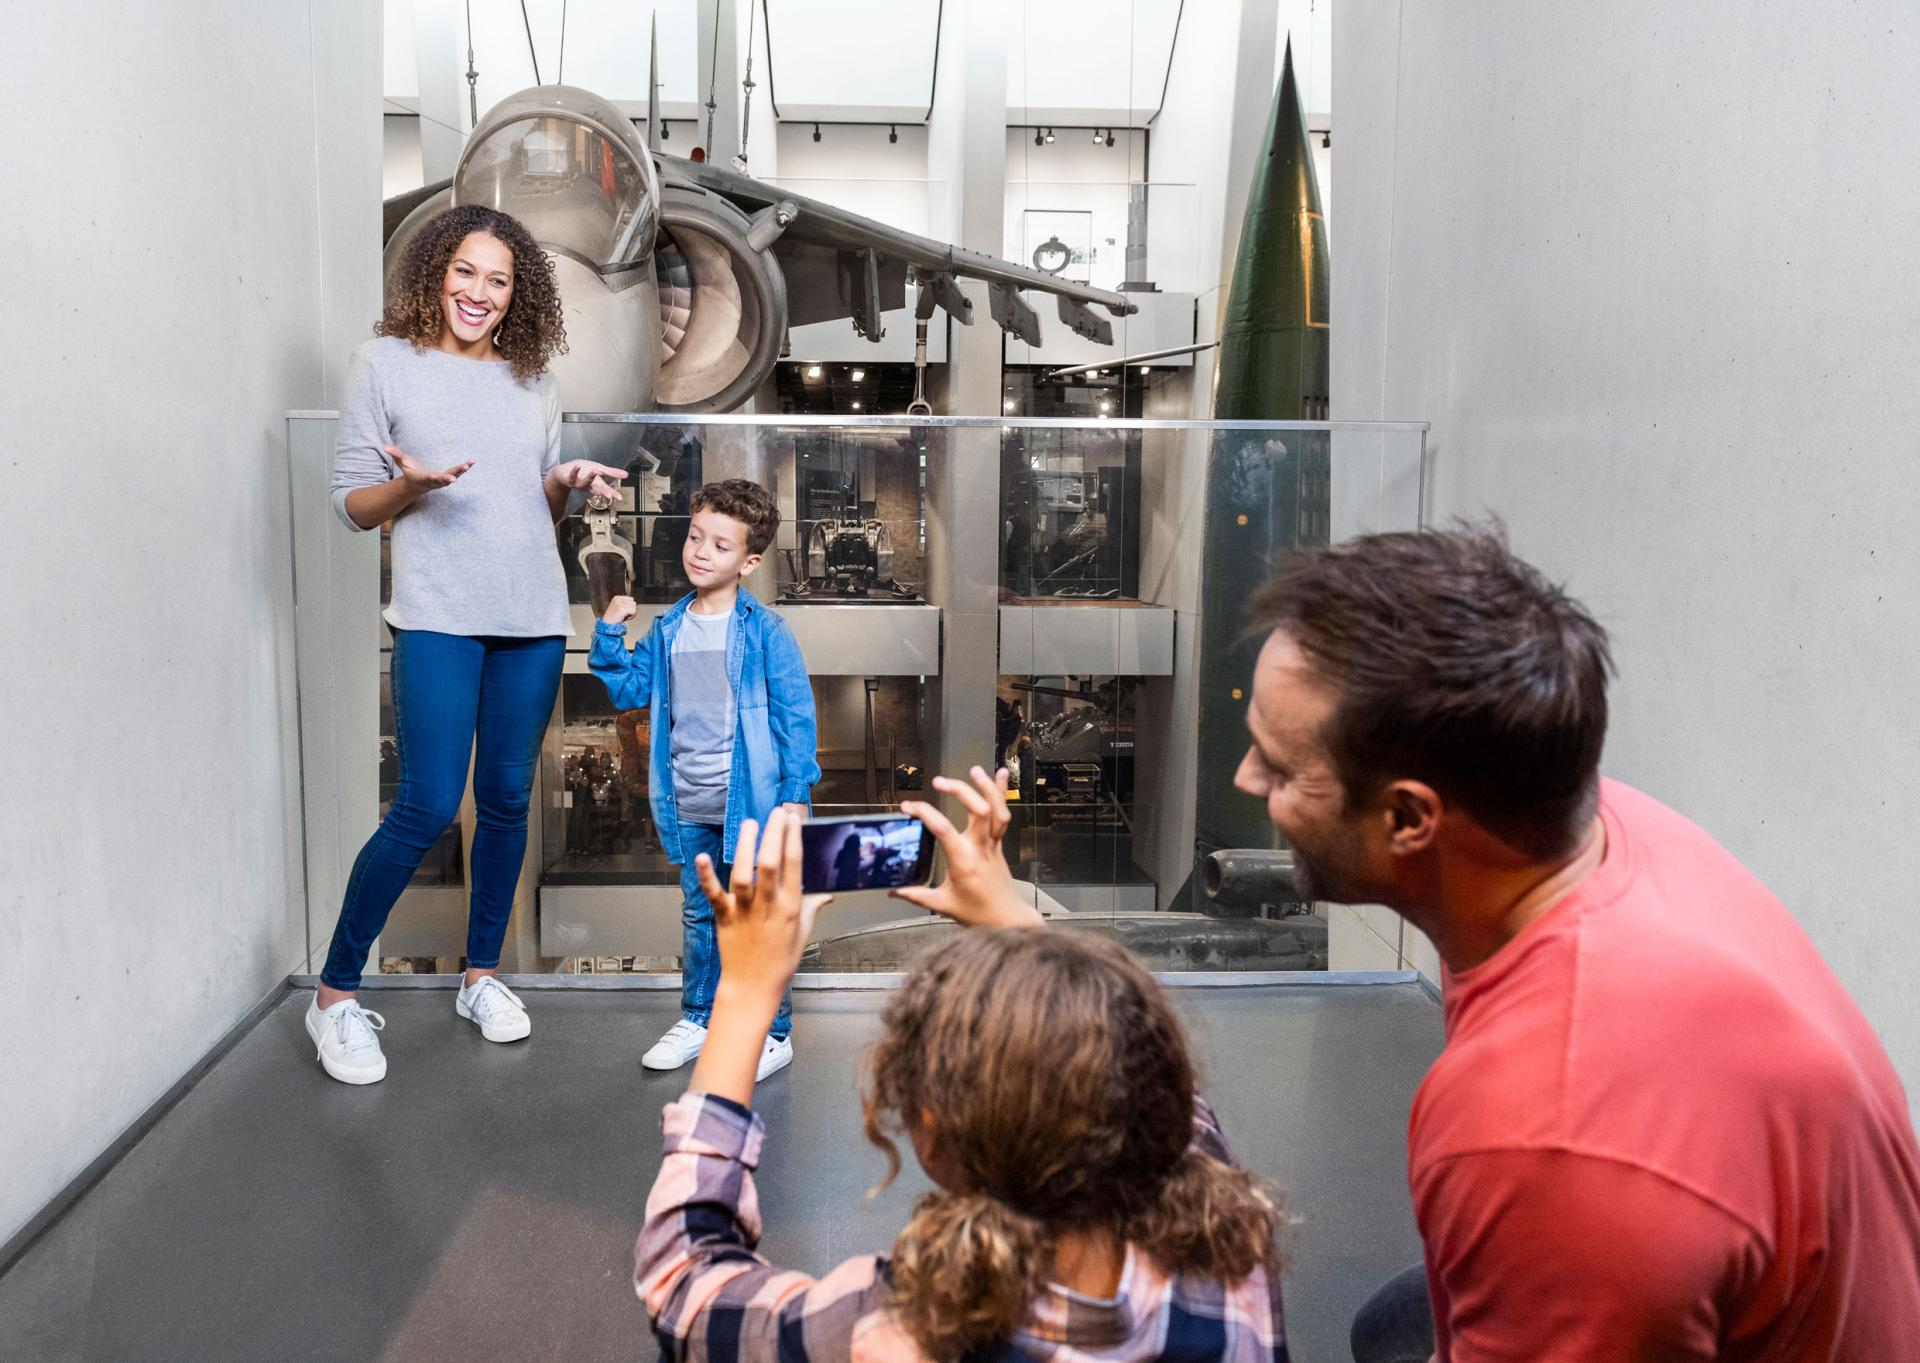 A family take part in the Documentary Challenge activity at IWM London.